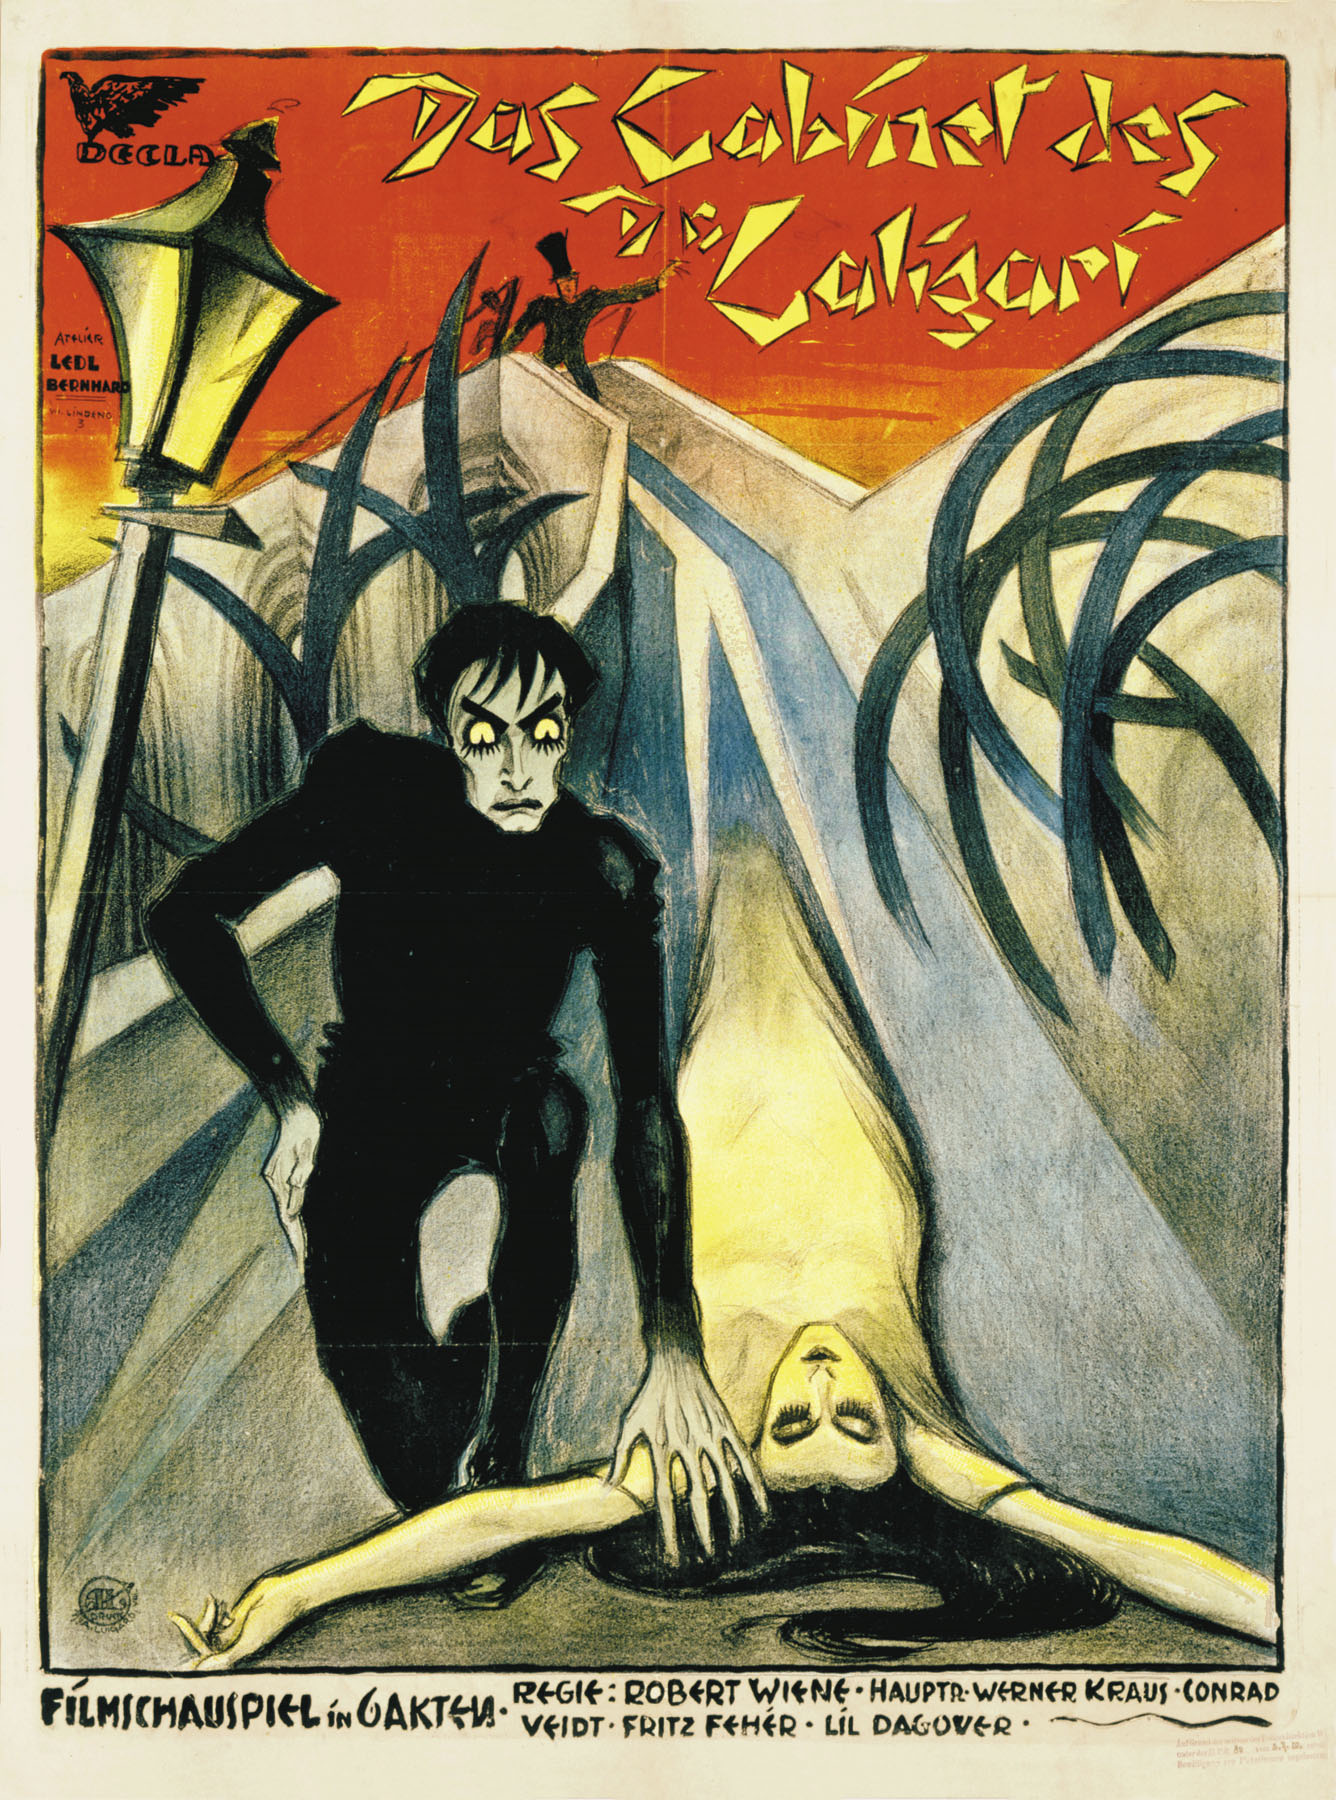 http://verdoux.files.wordpress.com/2008/04/the-cabinet-of-dr-caligari.jpg